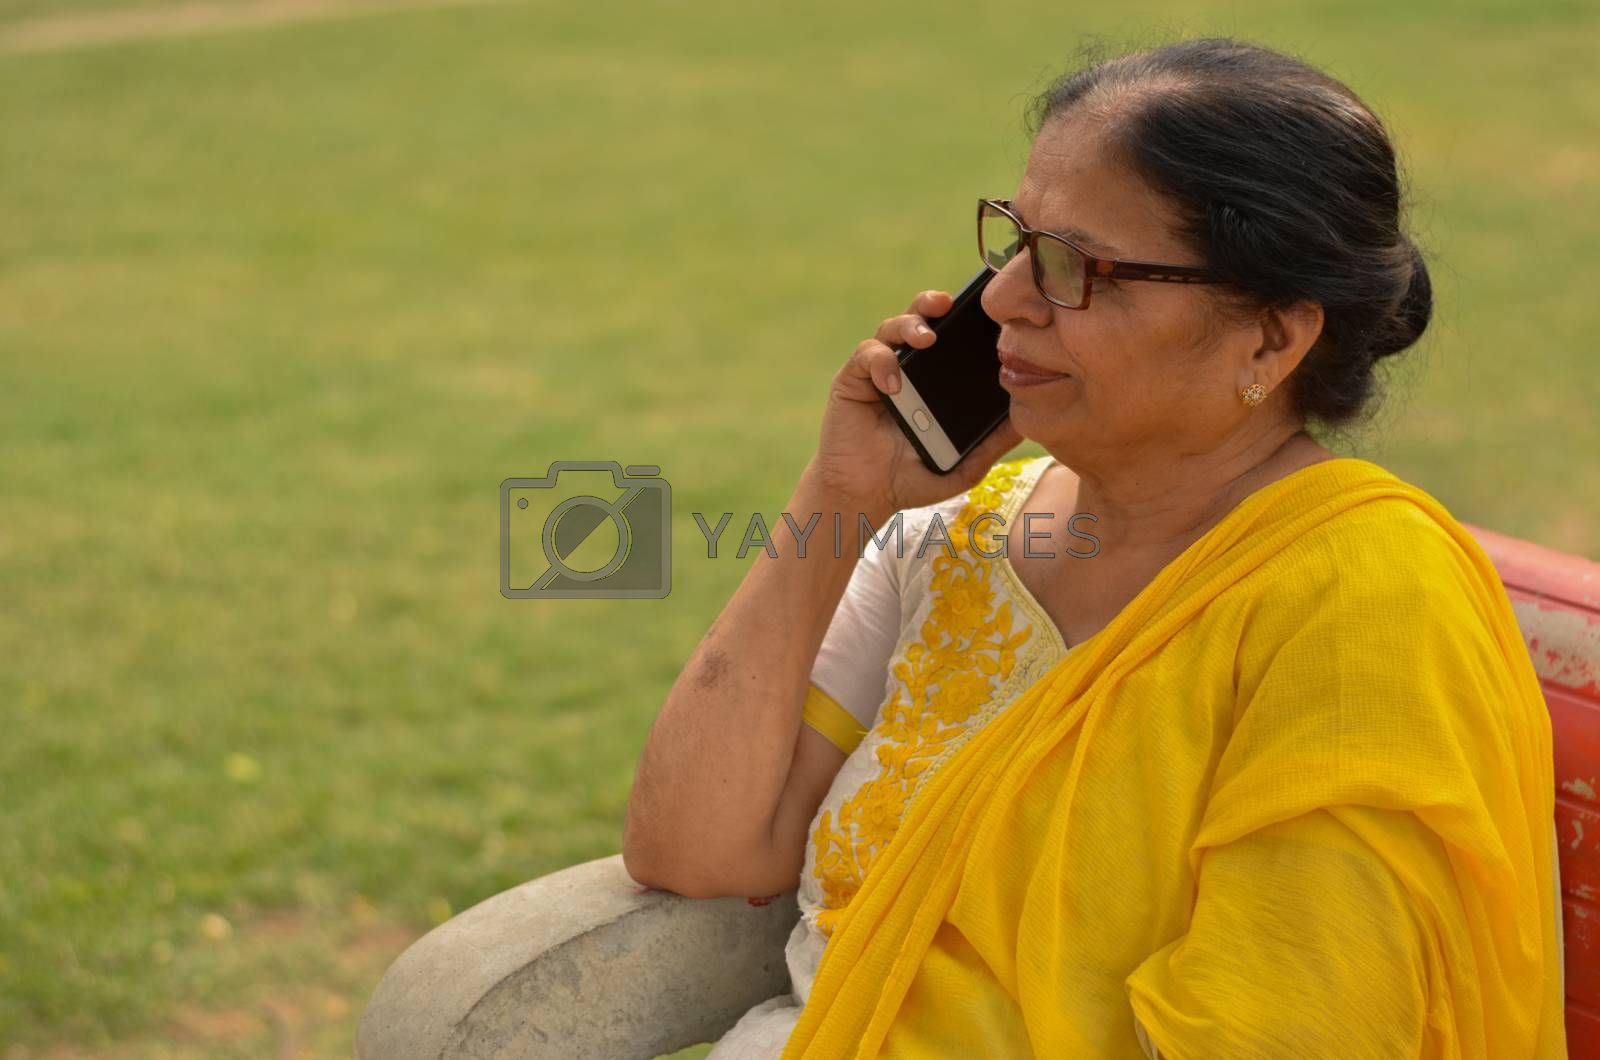 Side view Senior Indian woman speaking on her smart phone, sitting on a red bench in a park in New Delhi. Concept shot showcasing technology adoption by senior citizens. Digital India